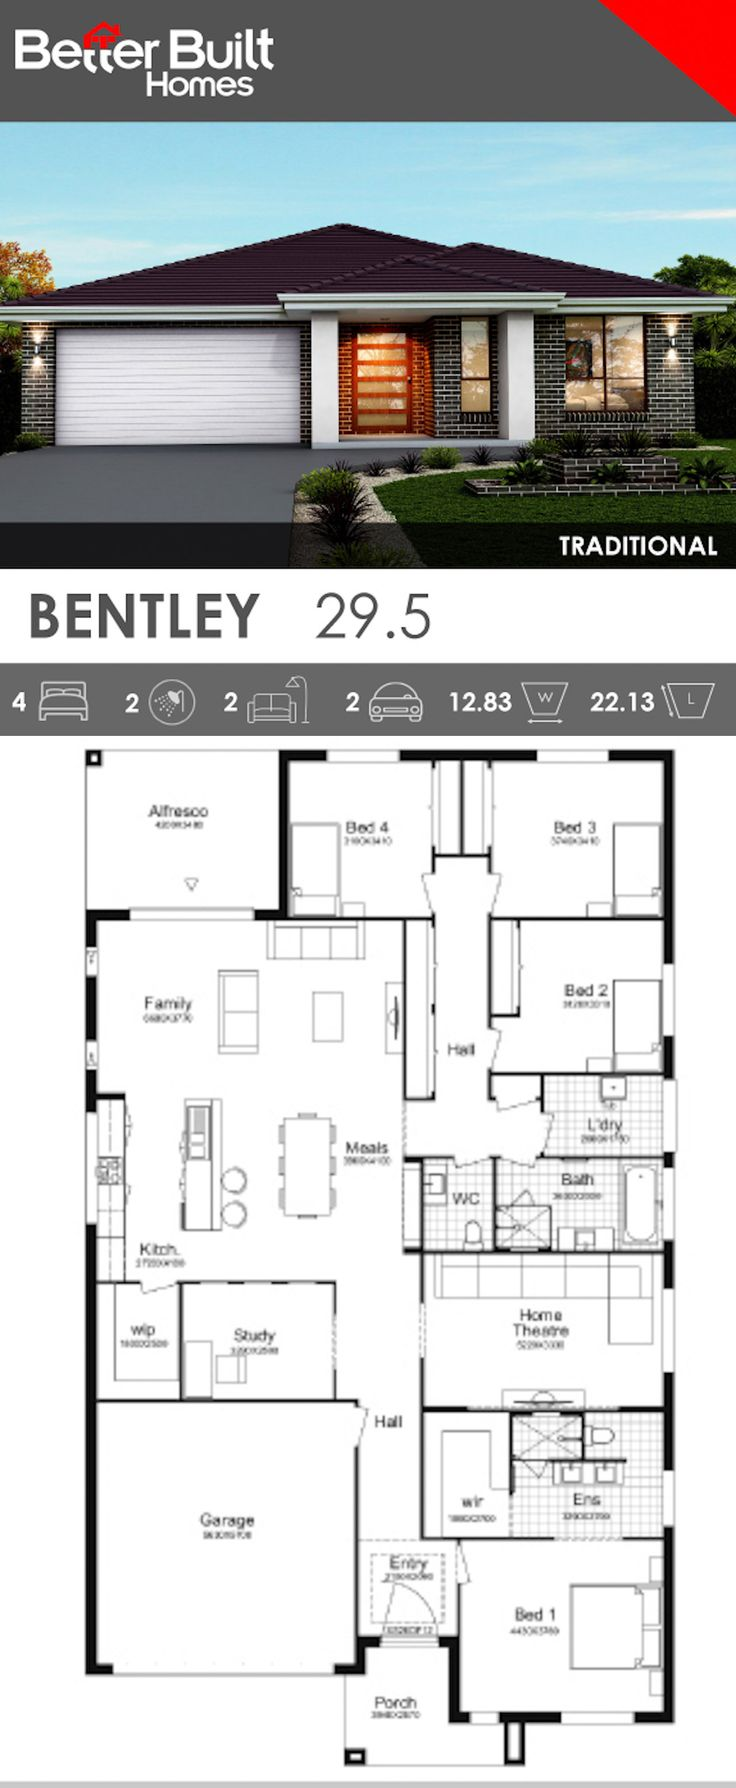 Best 25 4 bedroom house ideas on pinterest 4 bedroom for Garage plans free download